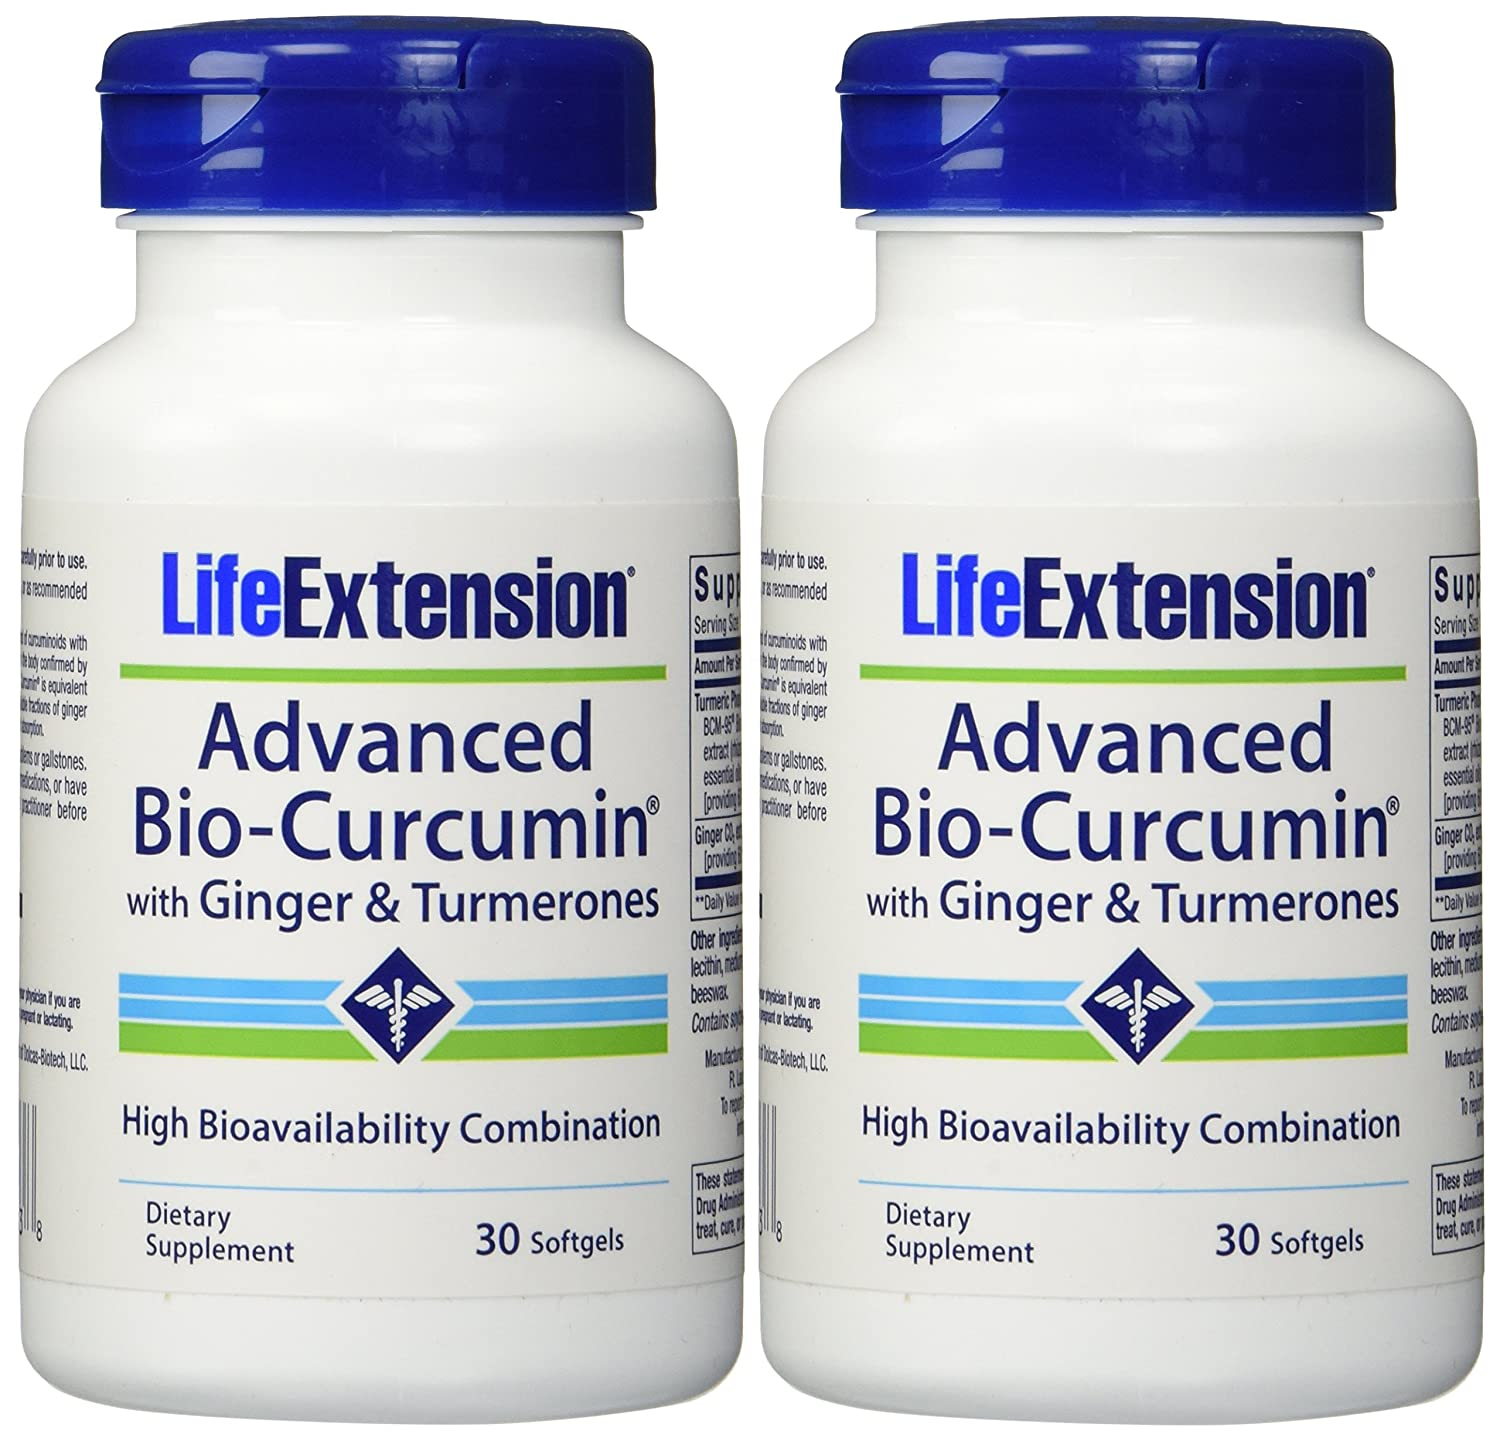 Life Extension Advanced Bio-curcumin with Ginger and Turmerones 30 Softgels 2-Pack